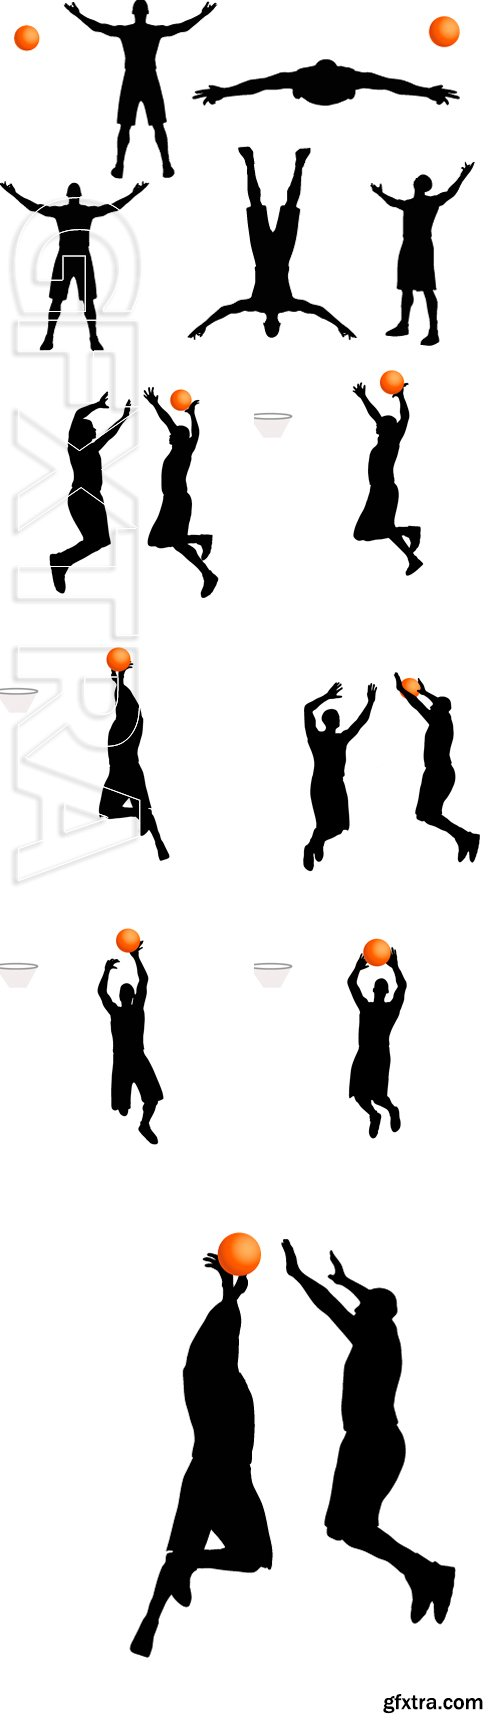 Stock Vectors - Vector Image - basketball player man silhouette isolated on white background